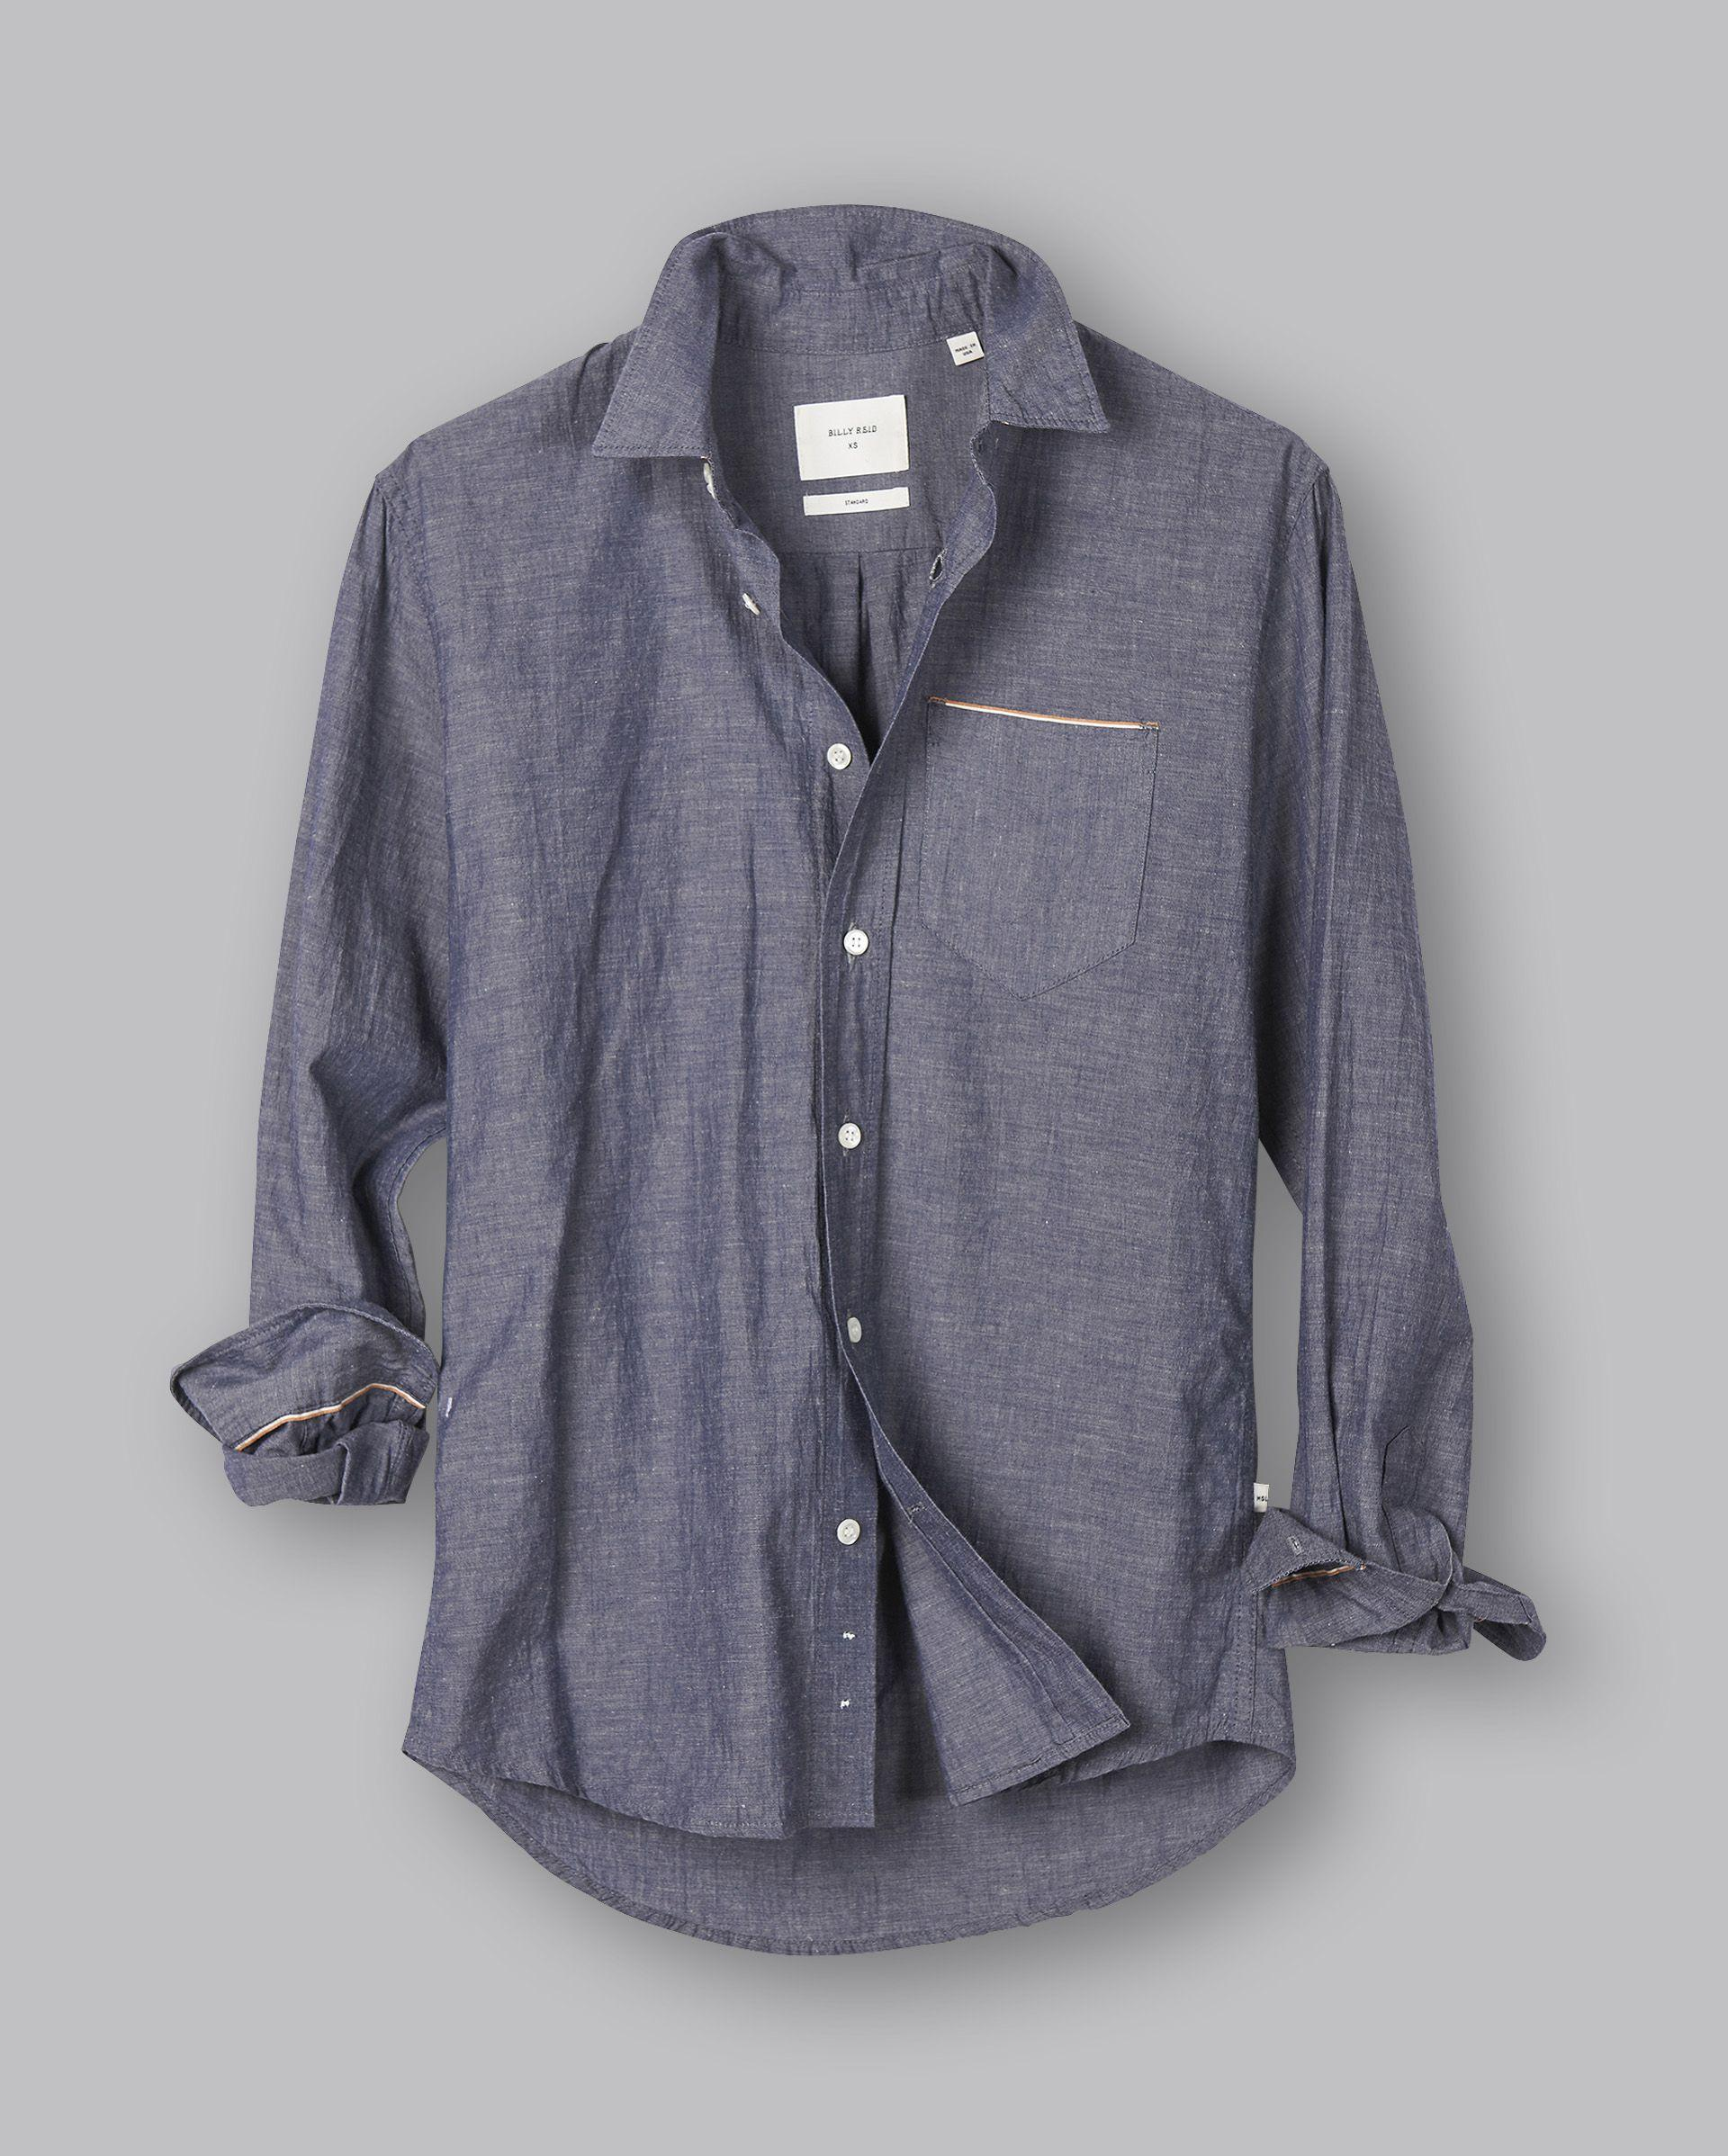 5d8cba6968 Lyst - Billy Reid Msl 1 Pkt Shirt for Men